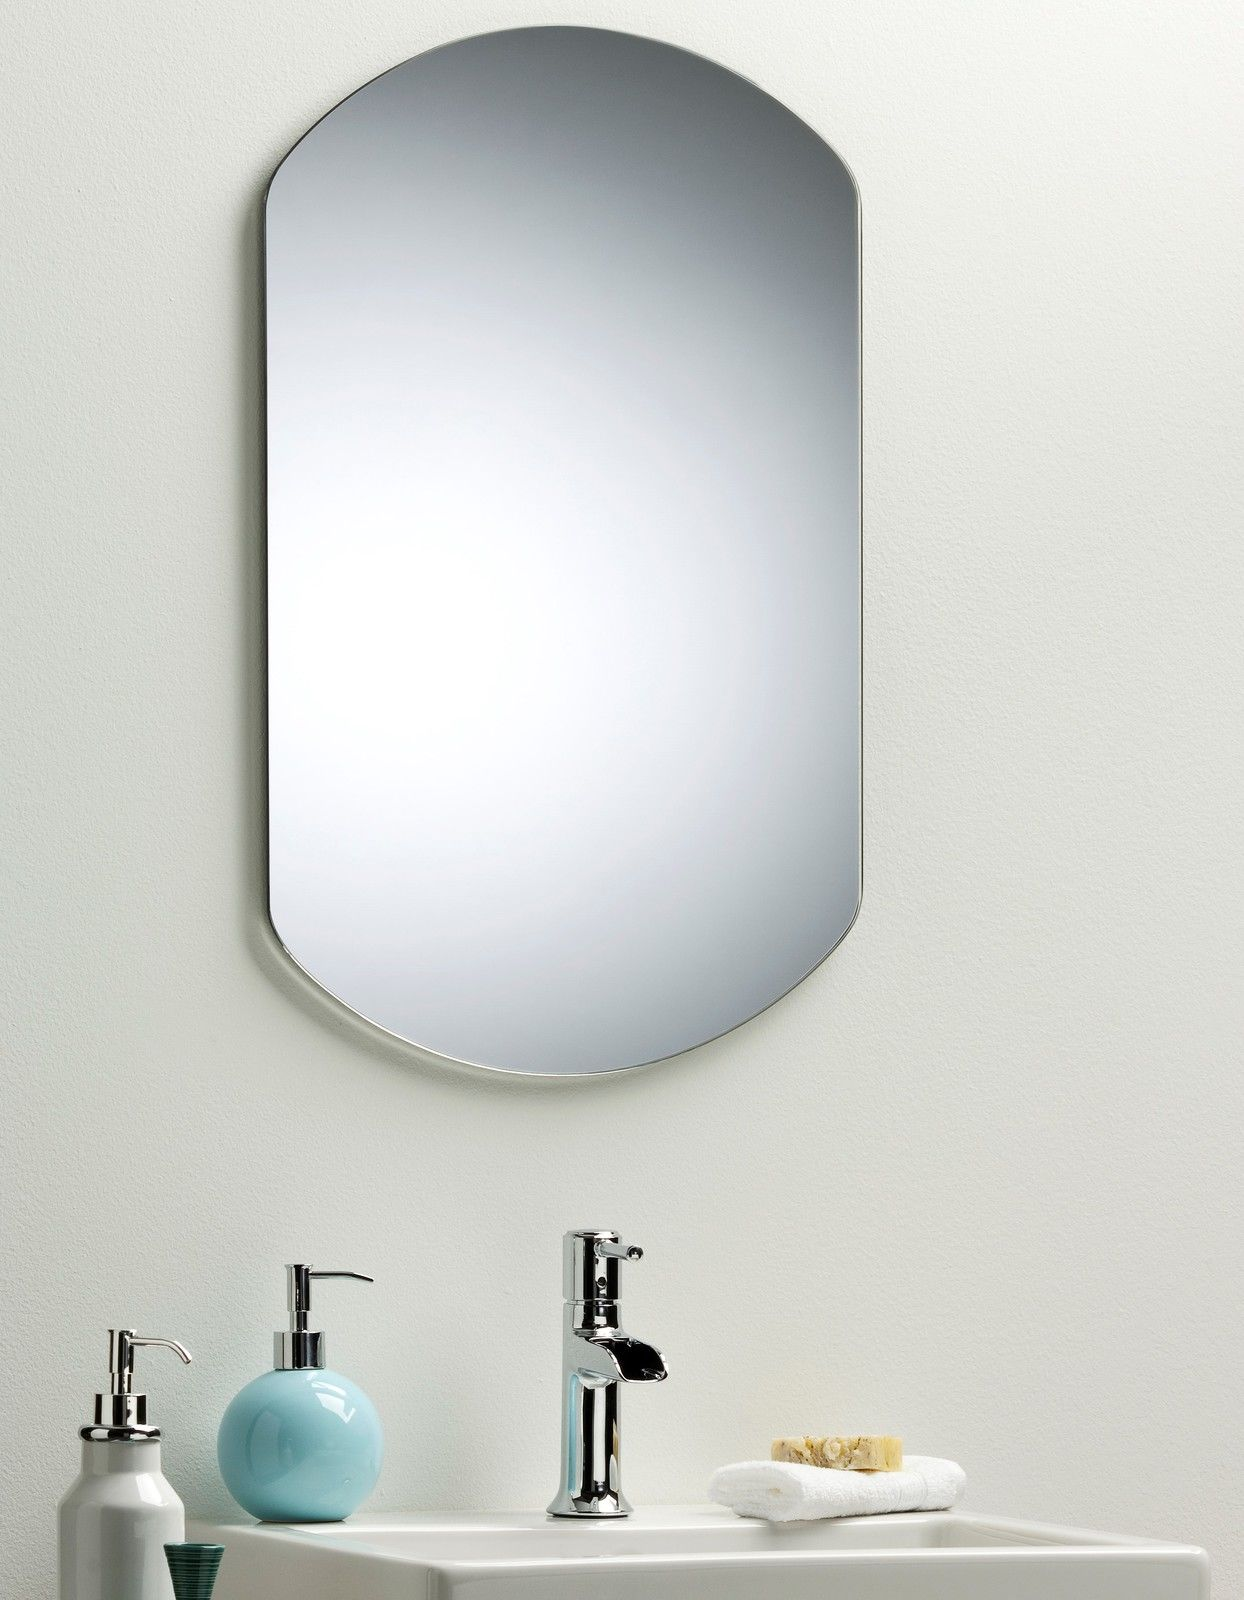 Bathroom mirror simple elegant plain design wall mounted 65cm x 40cm 1401le ebay Neue design bathroom mirror